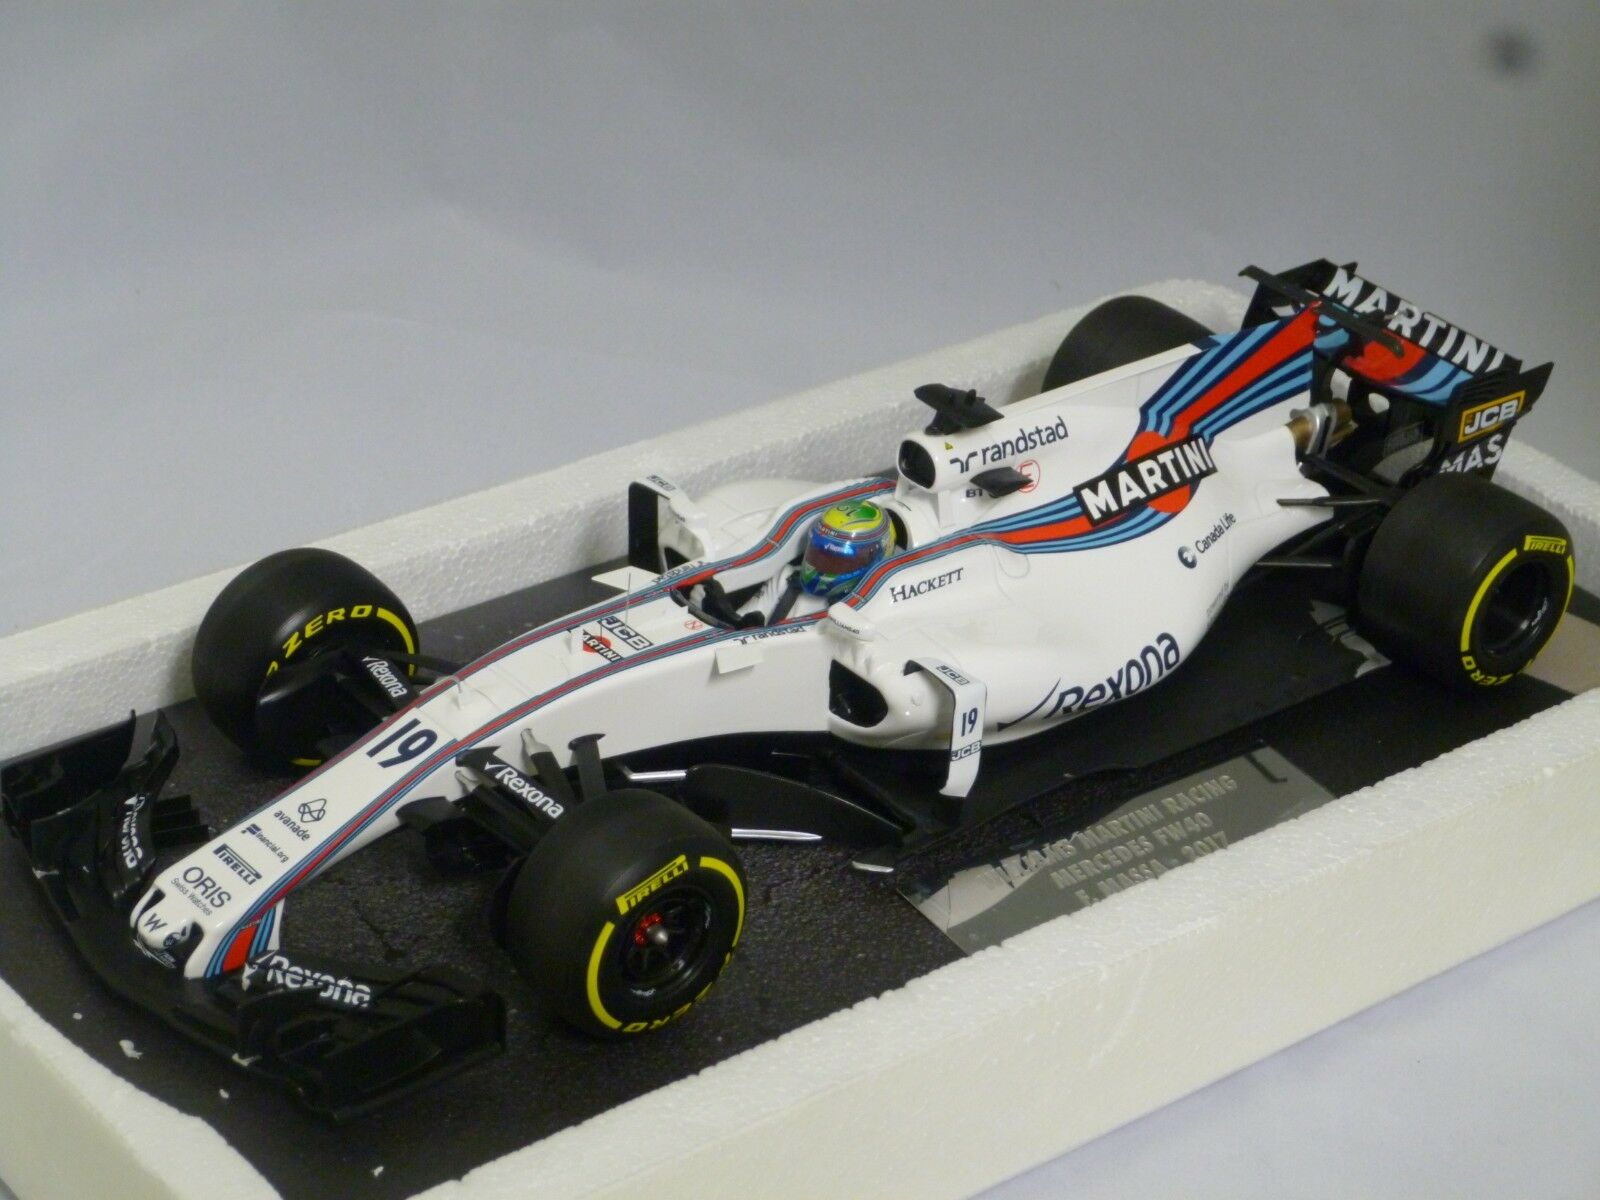 MINICHAMPS 117170019 1 18 WILLIAMS F1 Massa Australie